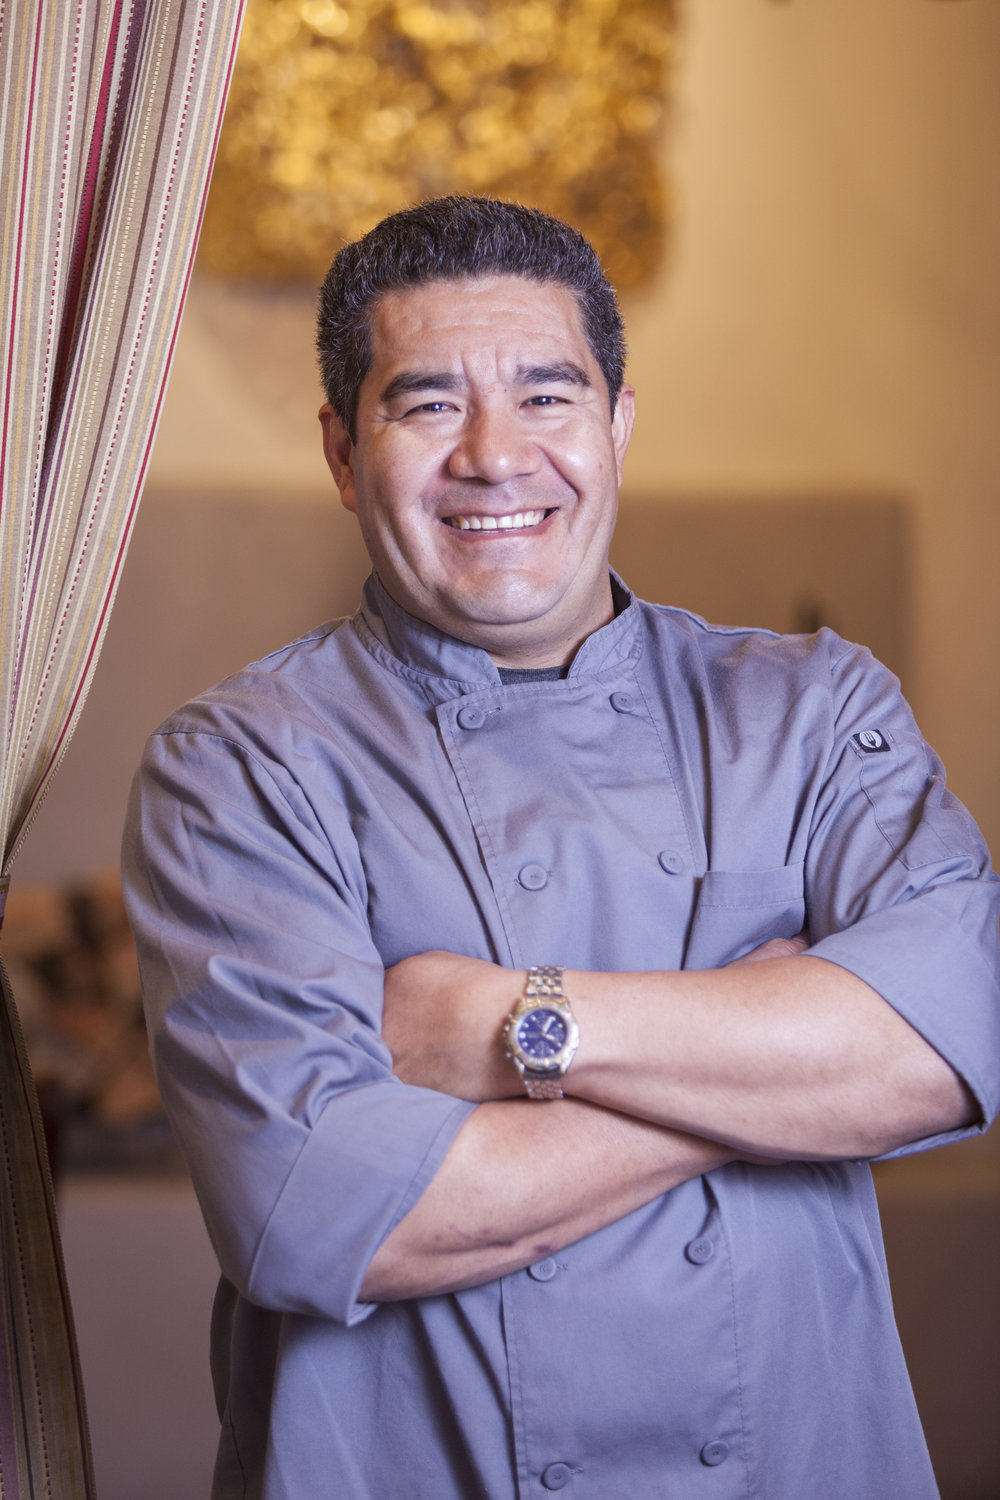 Chef Jose Rodriguez of La Casa Sena